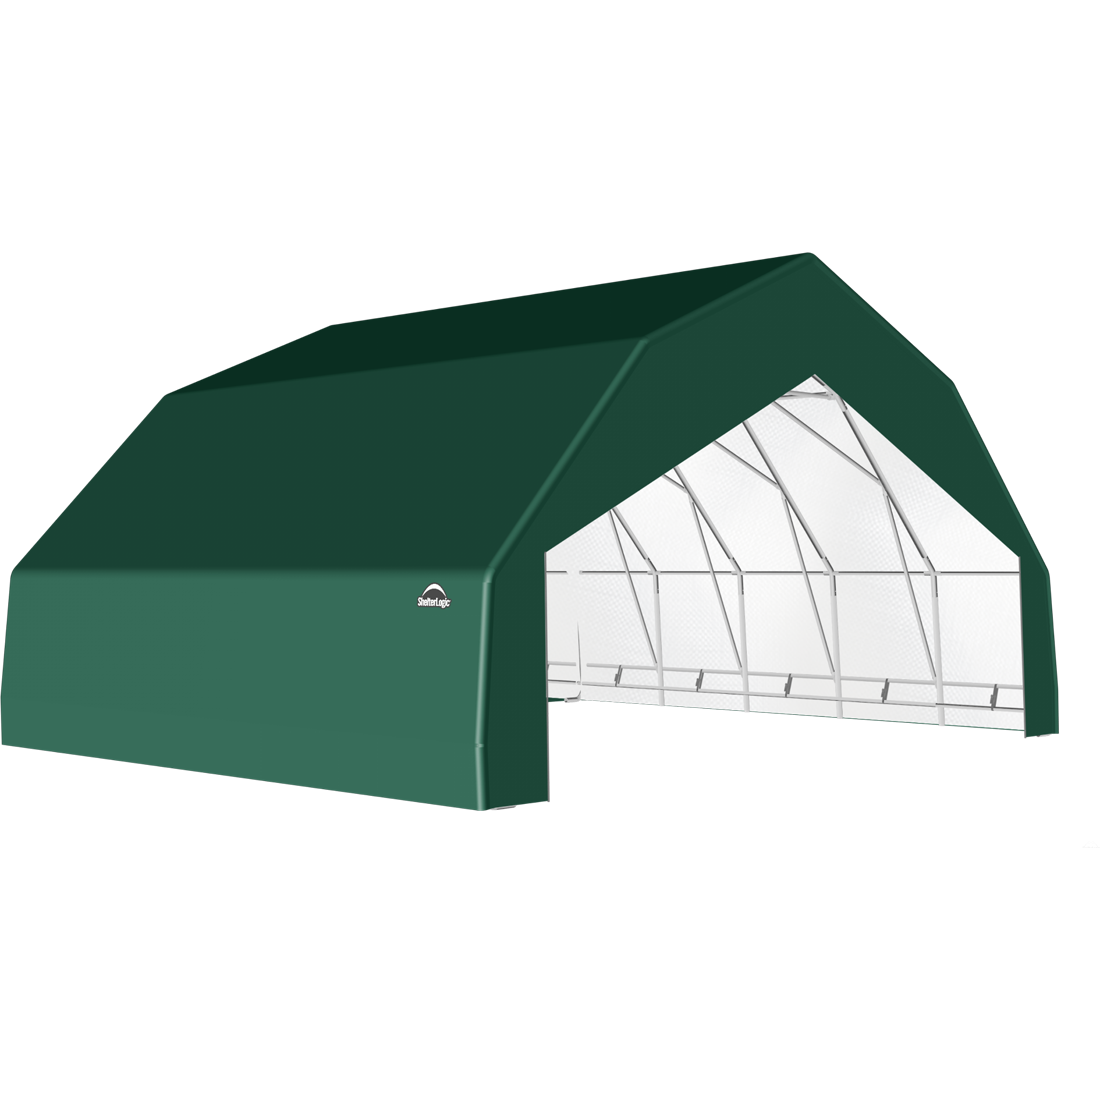 SP Barn 30X24X15 Green 14 oz PE Shelter